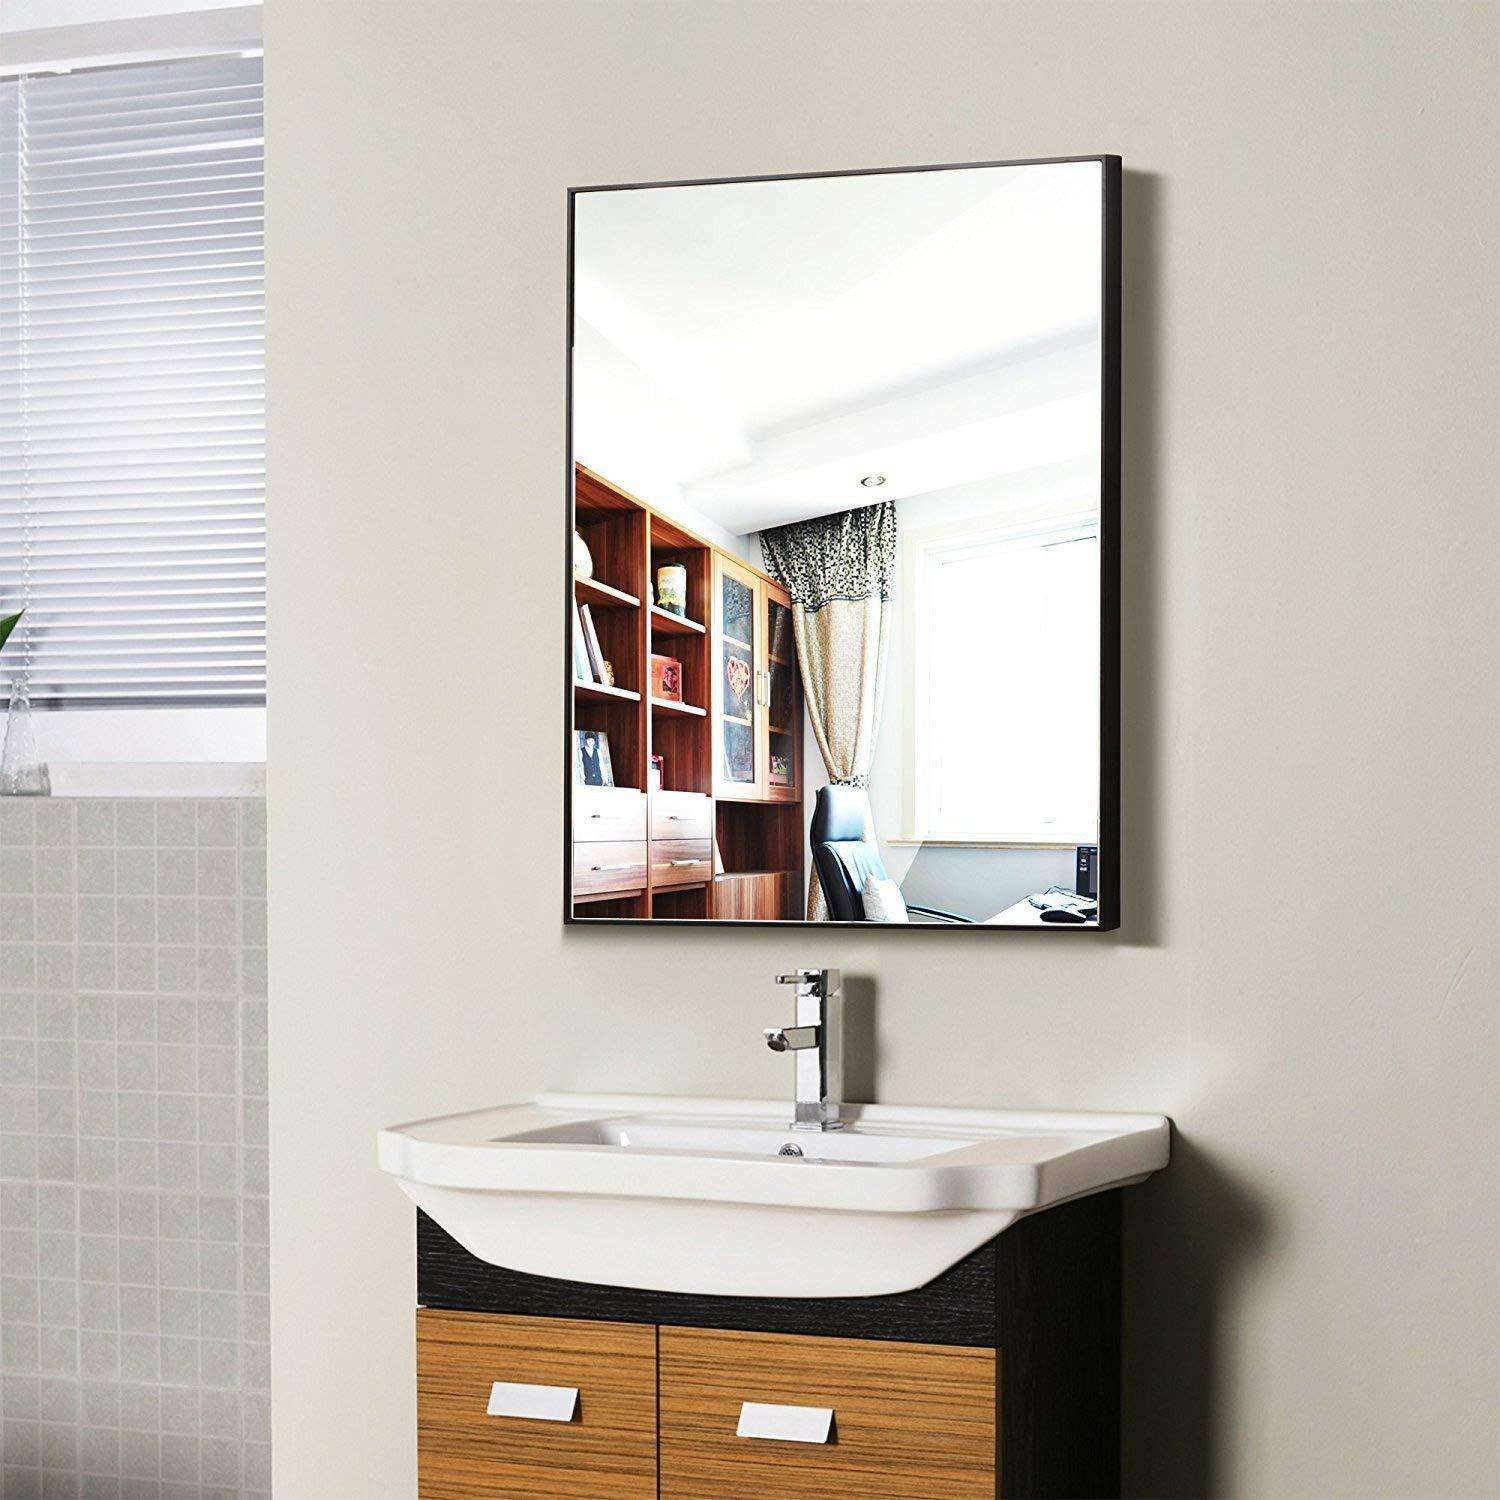 Hans & Alice Large Rectangular Bathroom Mirror, Wall-Mounted Wooden Frame Vanity Mirror Black (38x26)